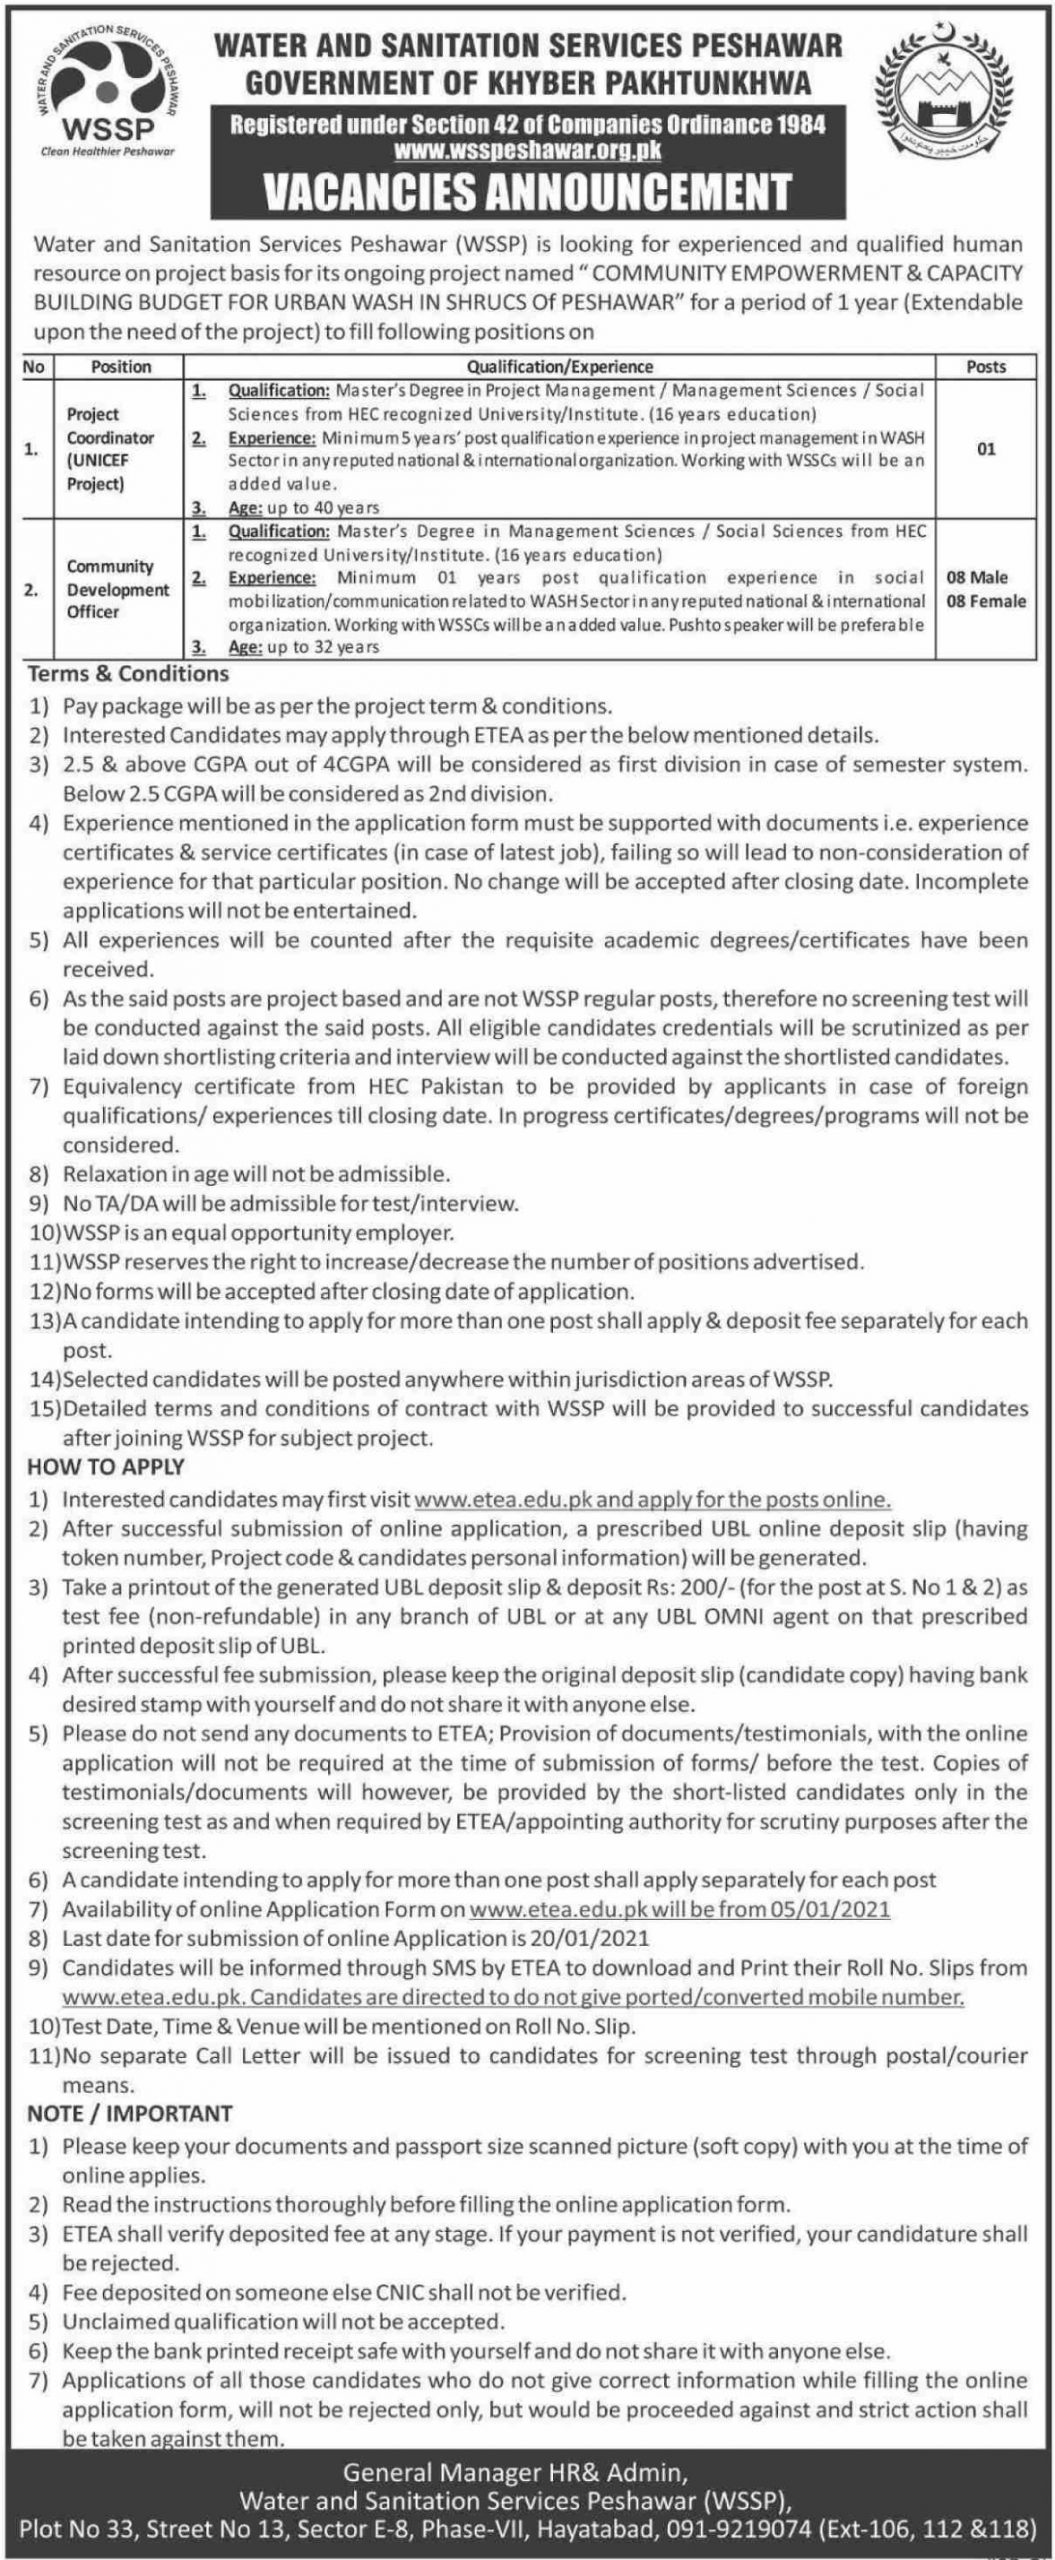 Water & Sanitation Services Peshawar WSSP ETEA Jobs December 2020